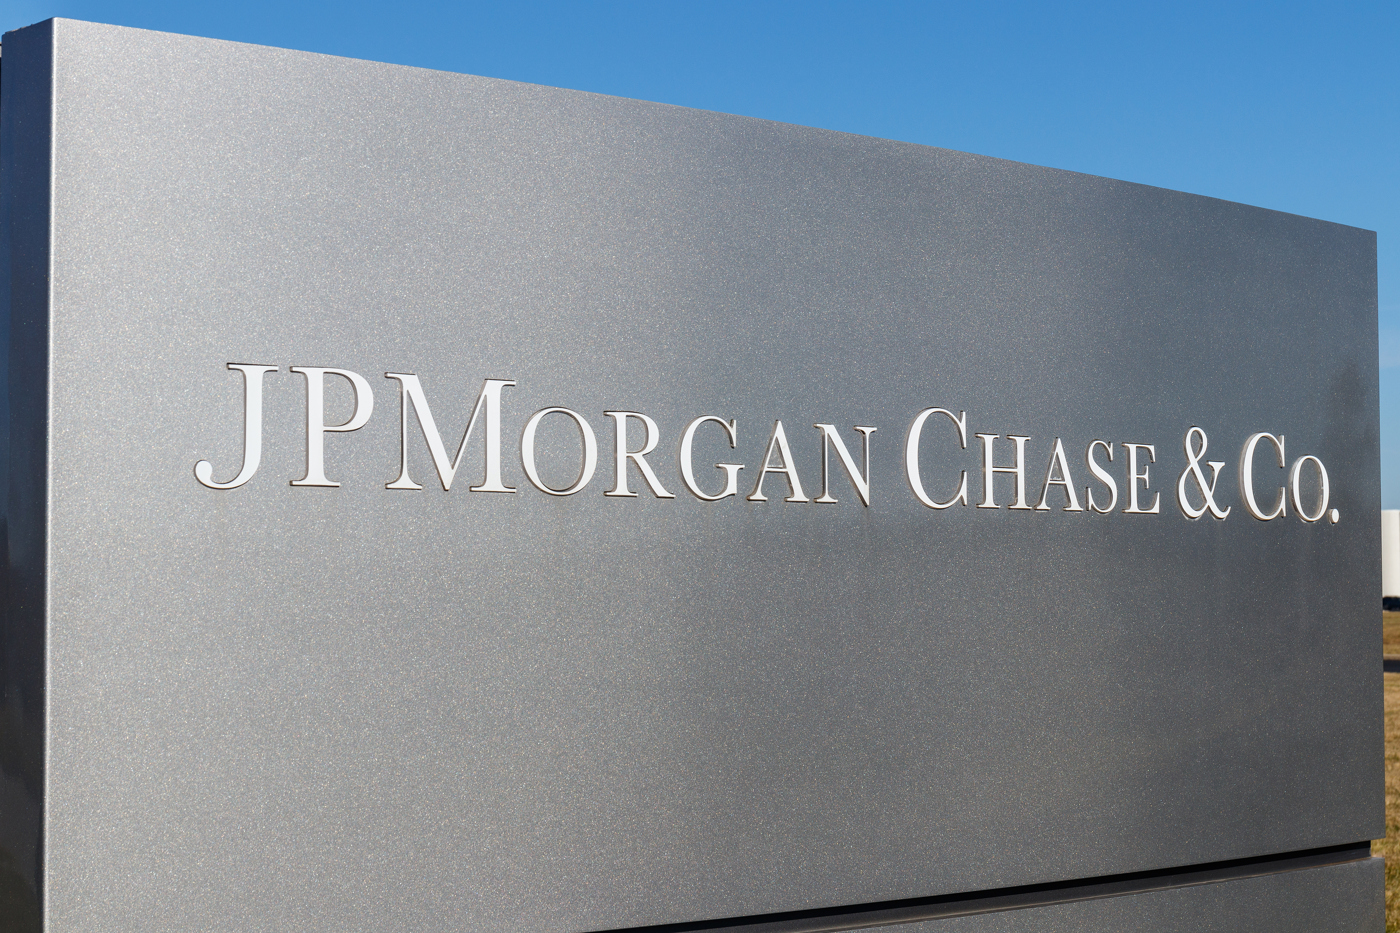 JPMorgan Chase JPM stock news and analysis